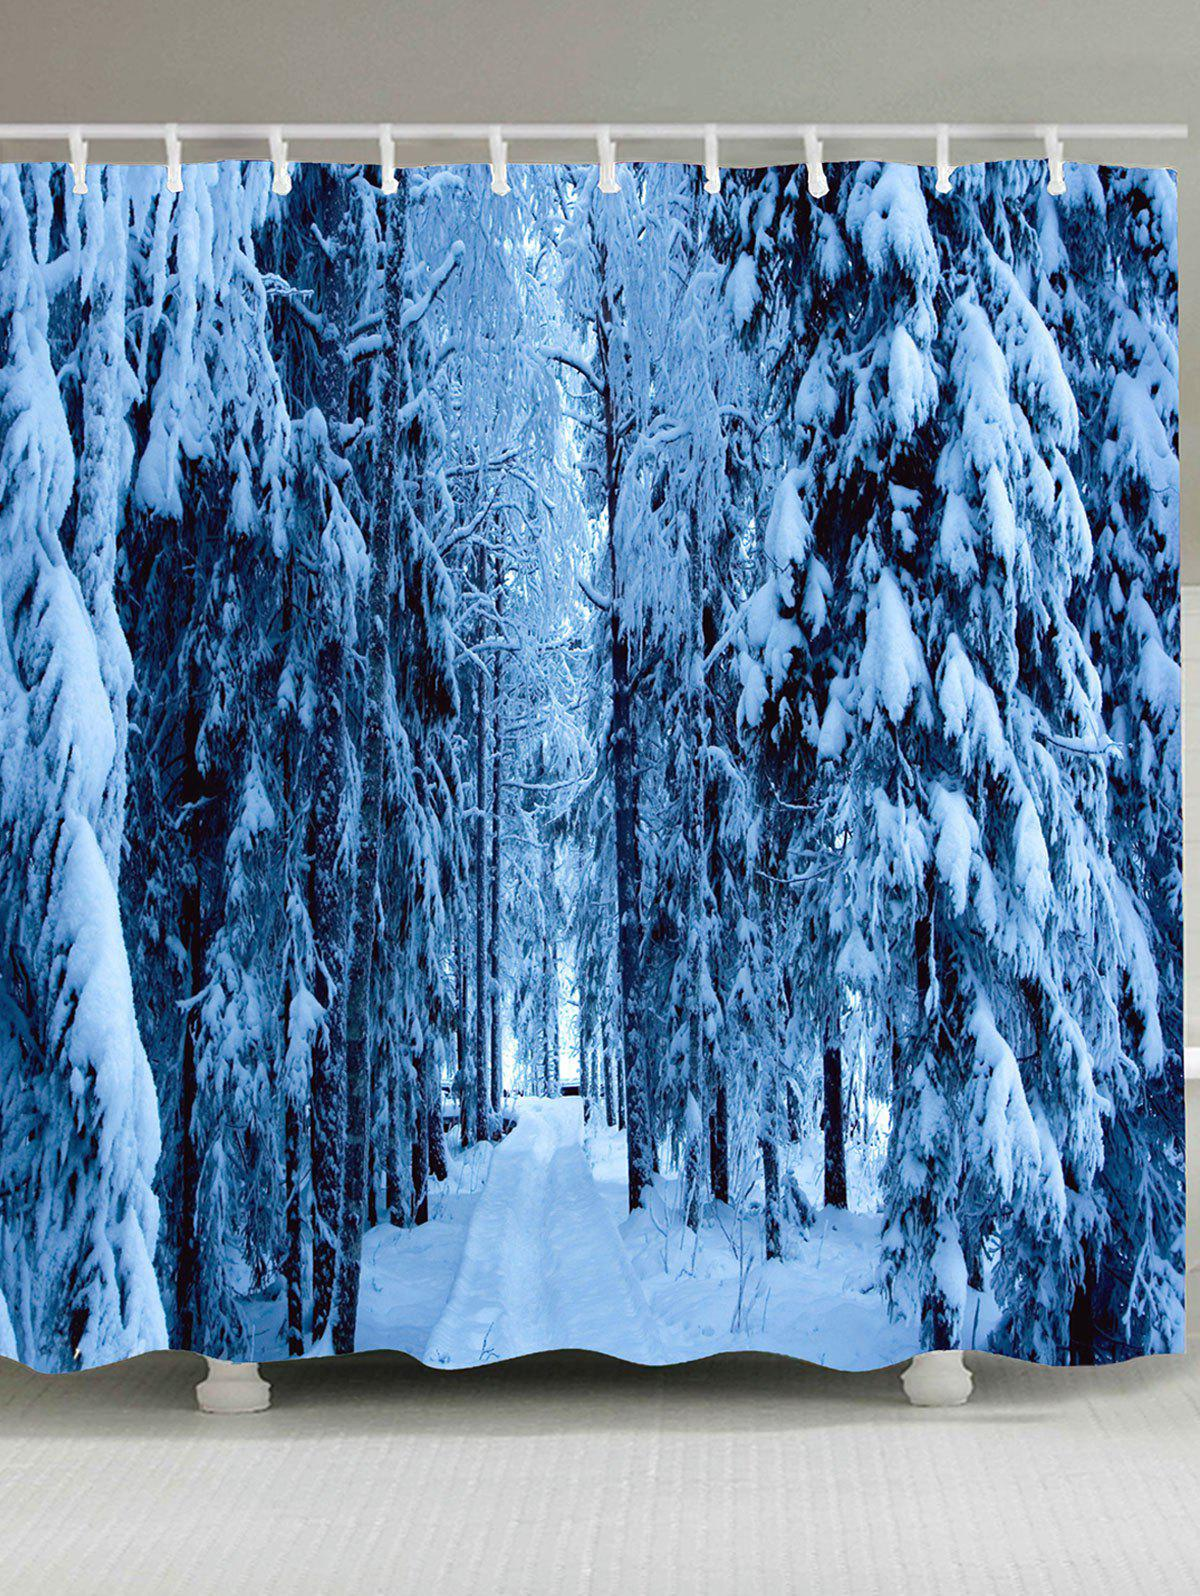 Pine Tree Snowscape Pattern Waterproof Shower Curtain отвертка крестовая pz2 38мм центроинструмент 722 38